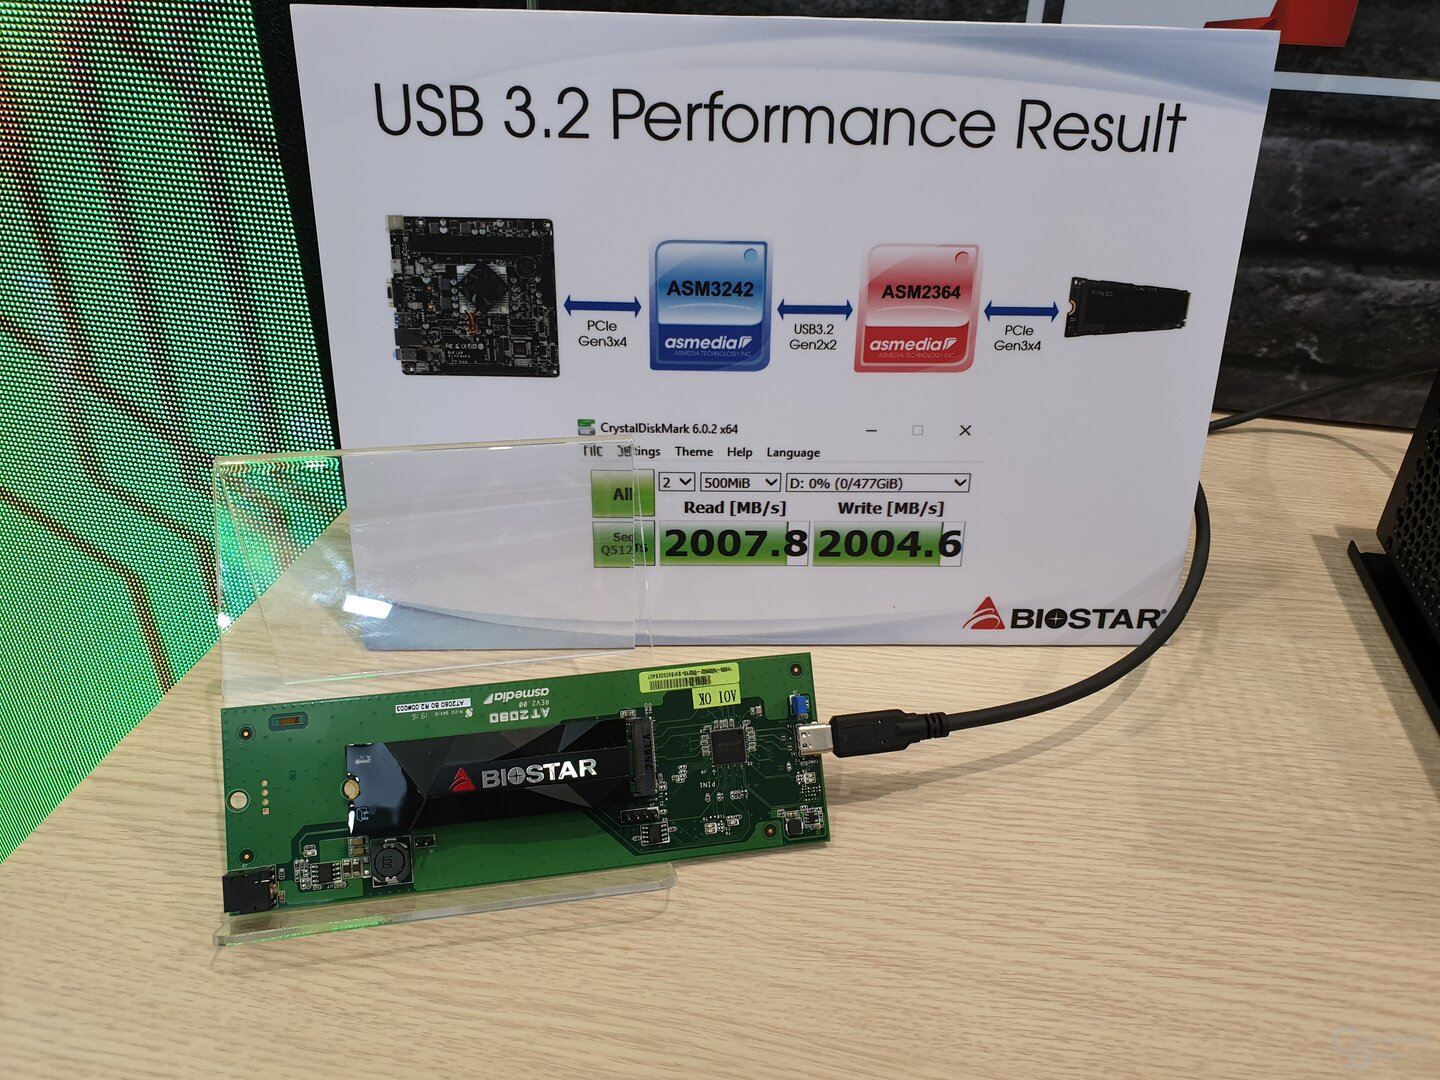 USB 3.2 mit 2 GByte/s in Aktion